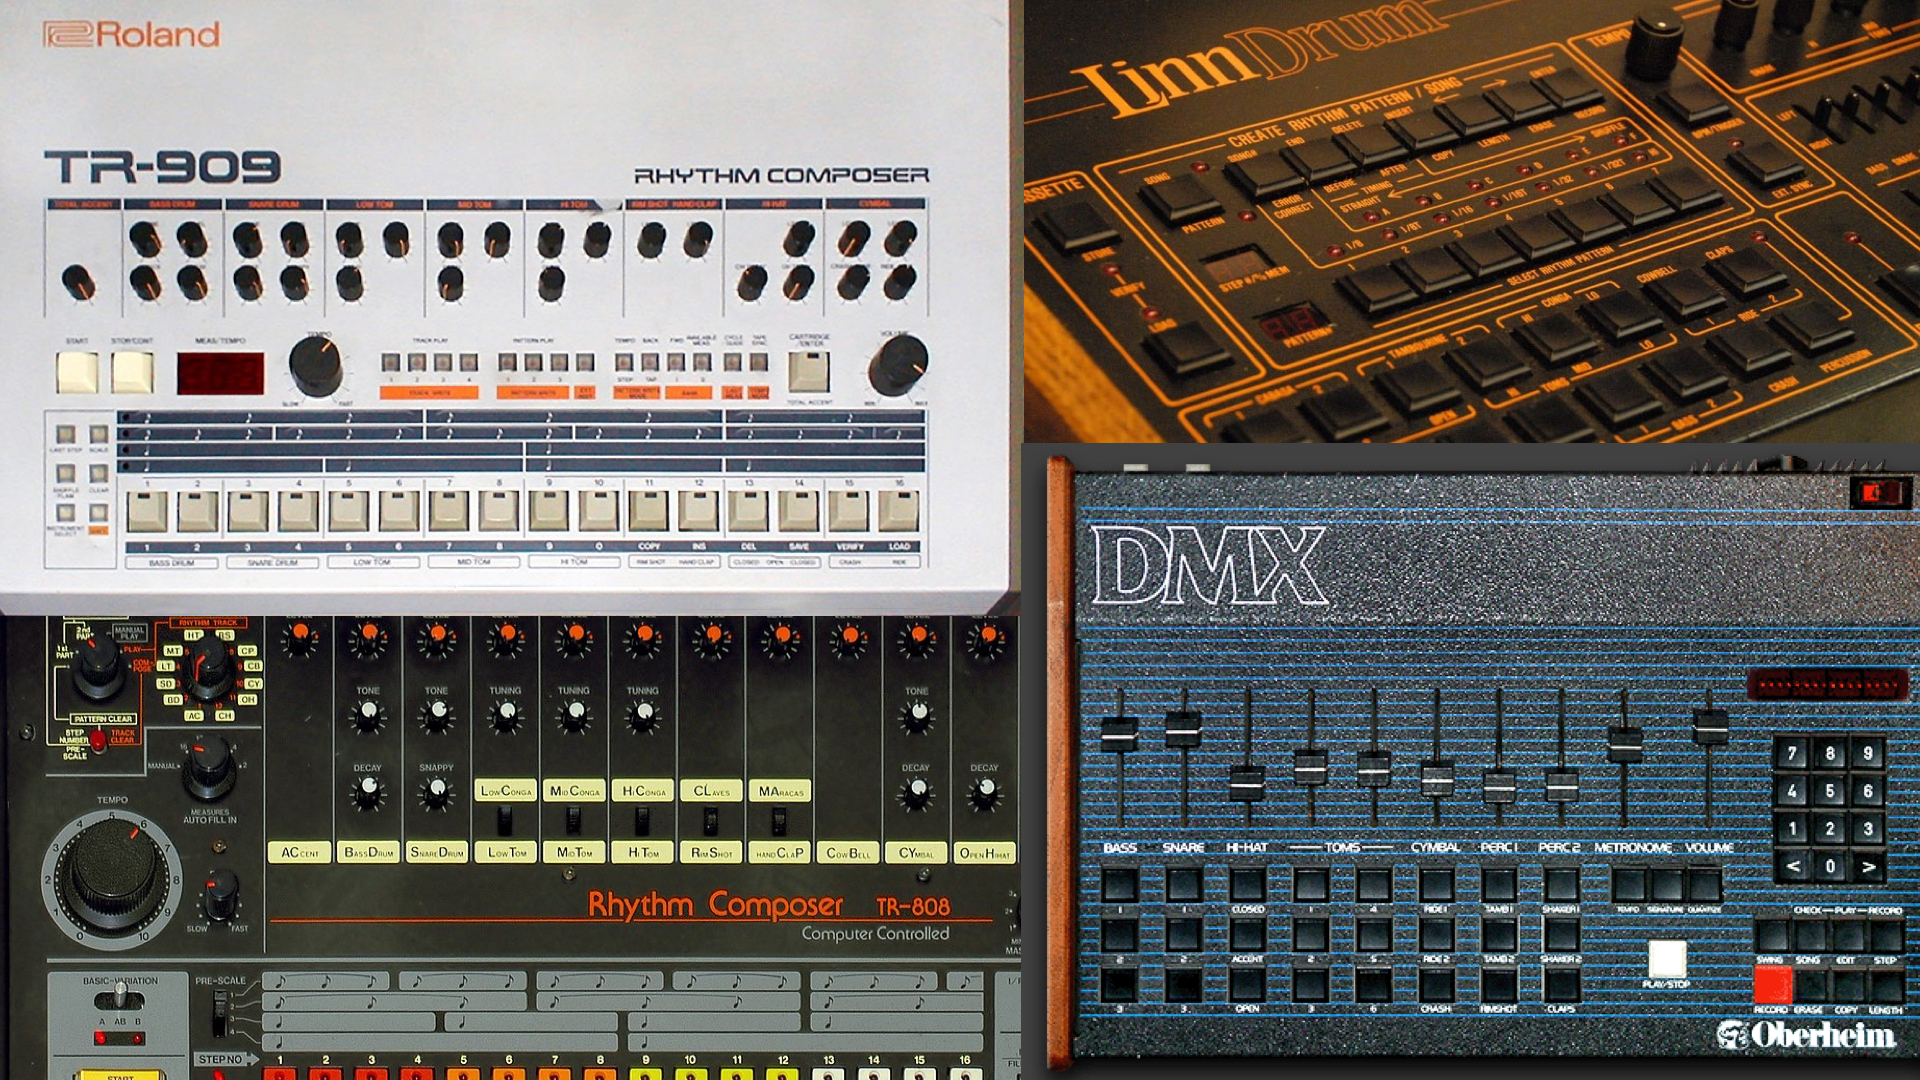 BEHRINGER Teased 5 New Drum Machines (LMX, OMX, 808, 909, 999)